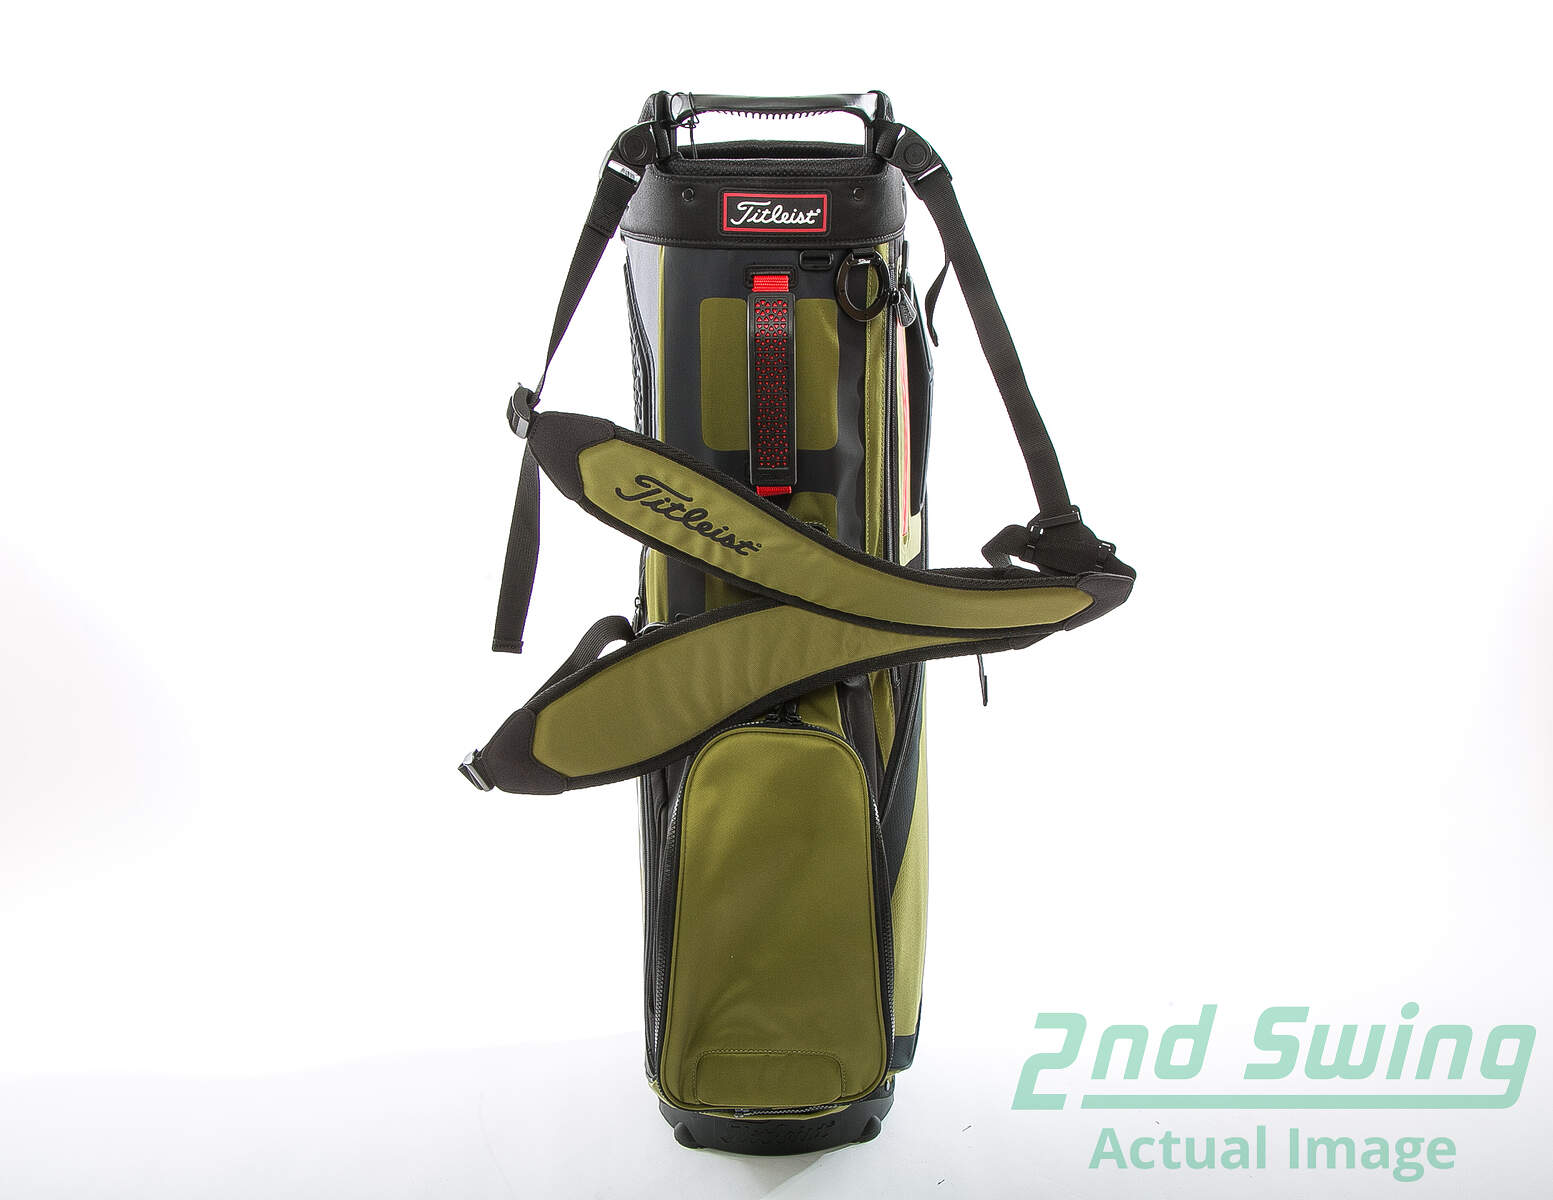 aac735596c5 New Titleist Players 5 Stand Bag Black/Olive/Red With Rain Cover   2nd  Swing Golf